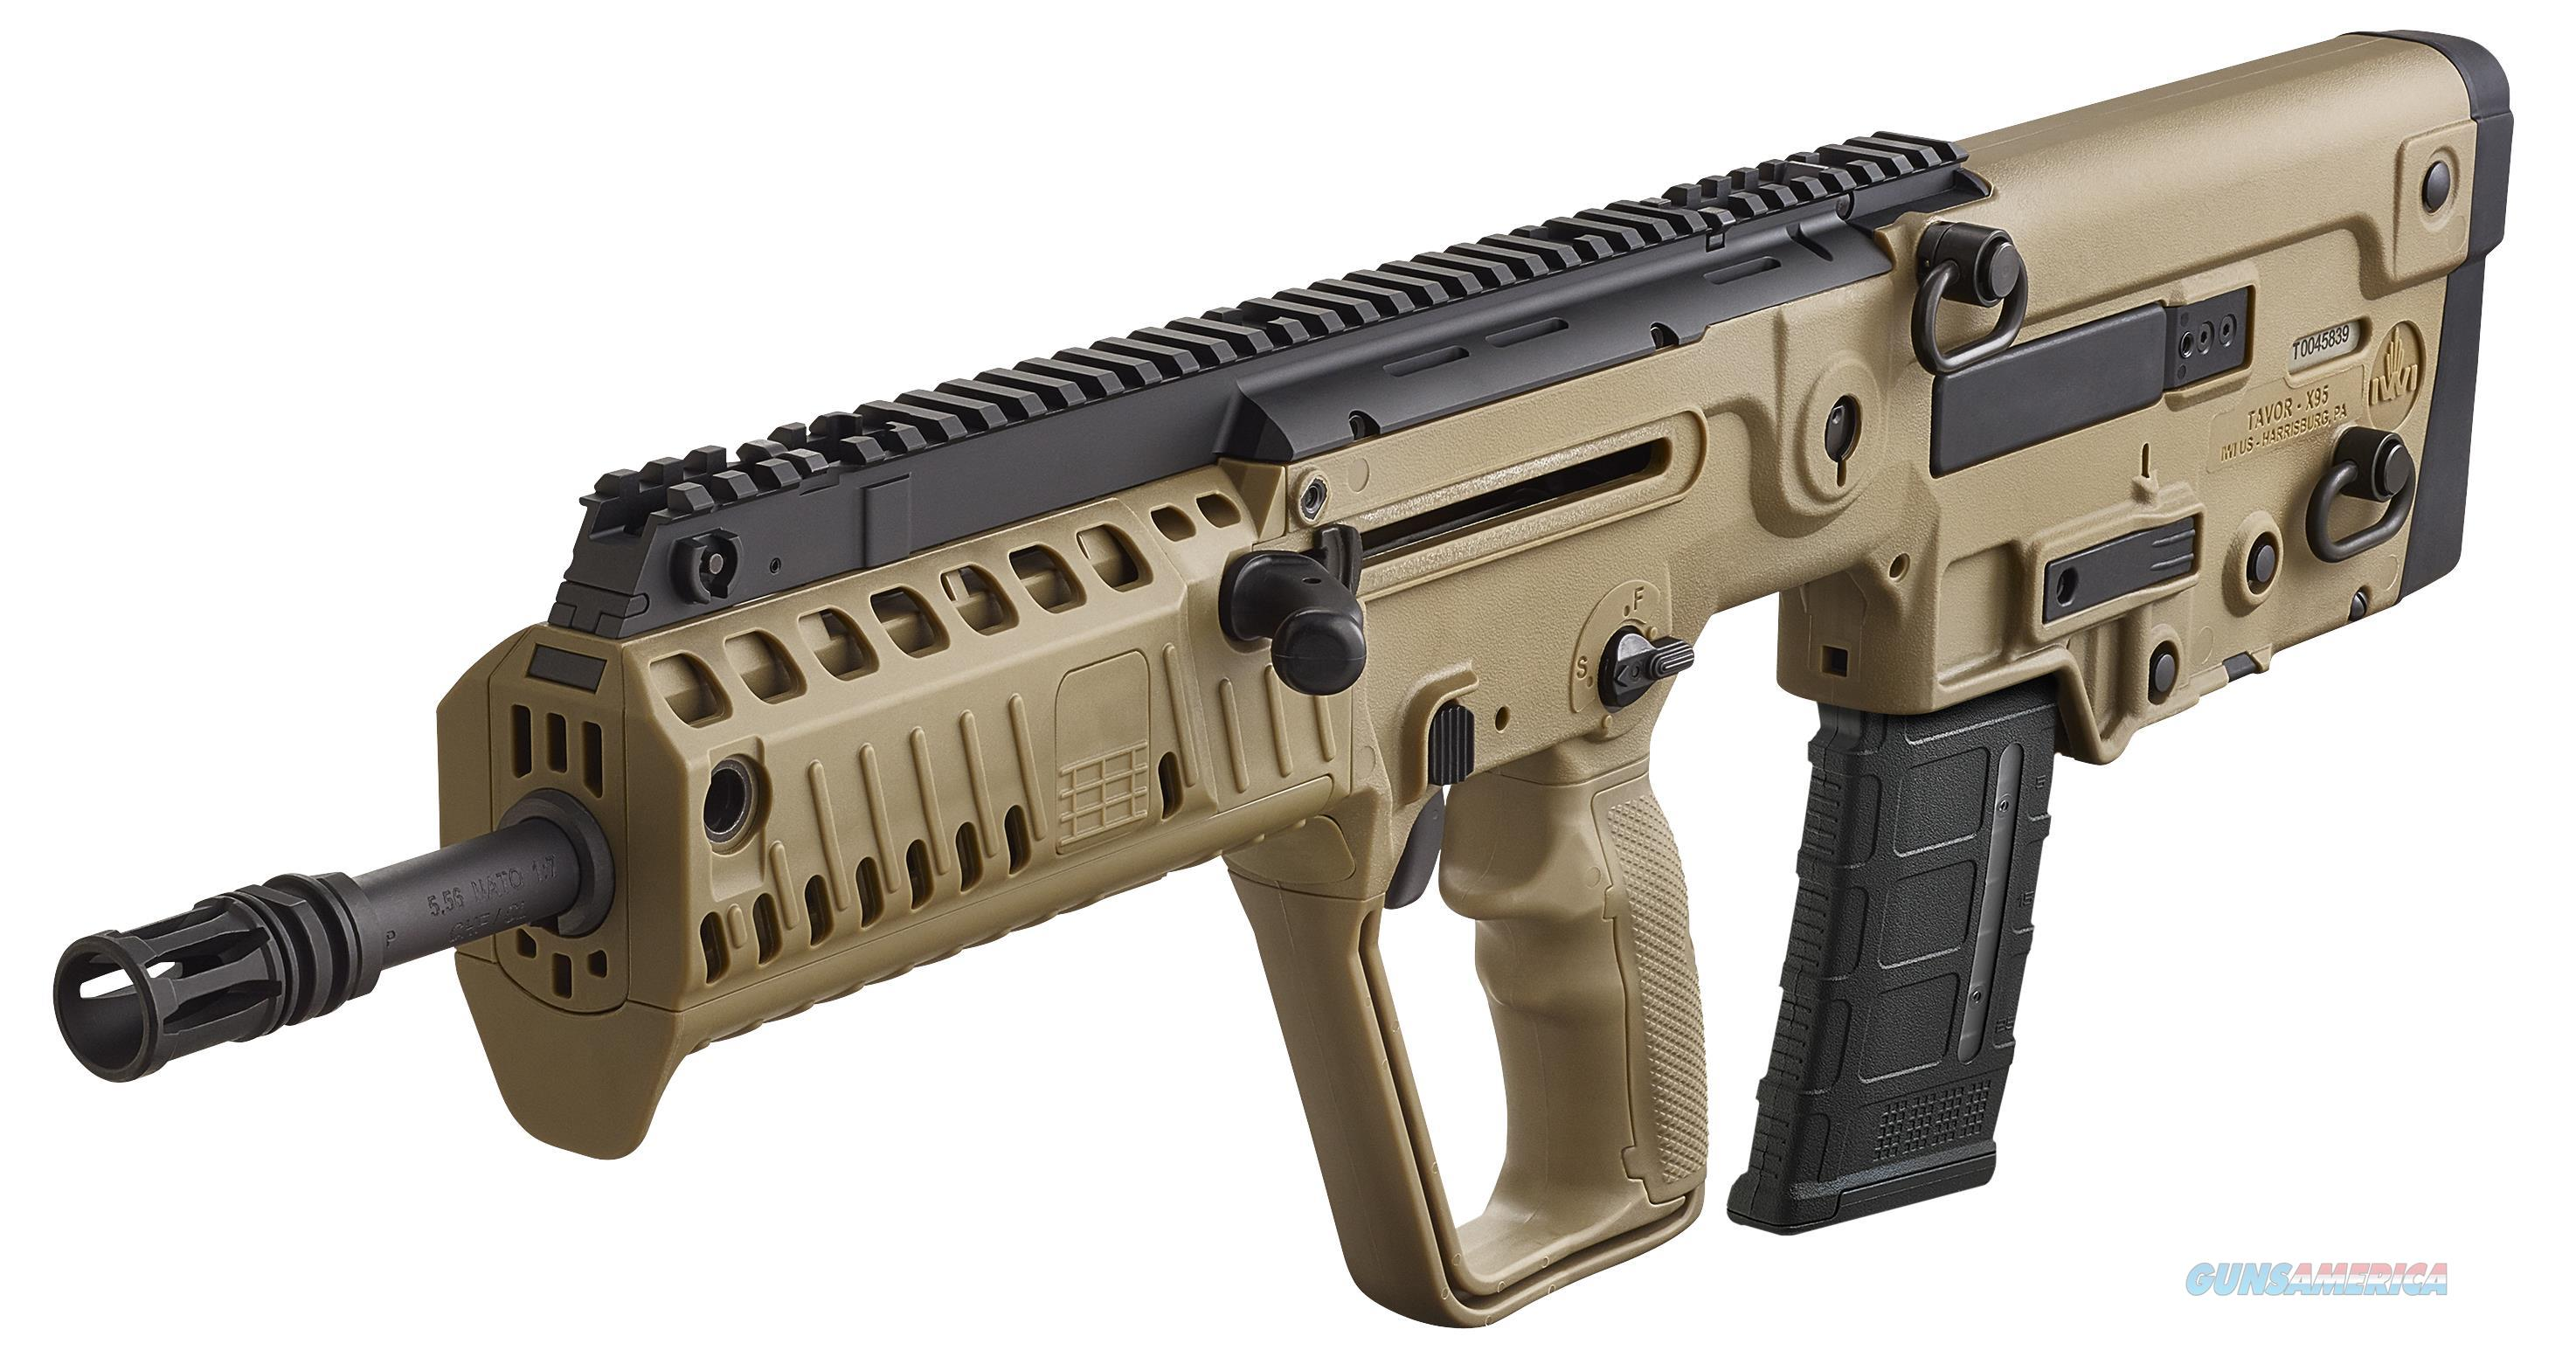 "Iwi Us Xfd18 Tavor X95 Semi-Automatic 223 Remington/5.56 Nato 18.5"" 30+1 Polymer Bullpup Flat Dark Earth Stk Black XFD18  Guns > Rifles > IJ Misc Rifles"